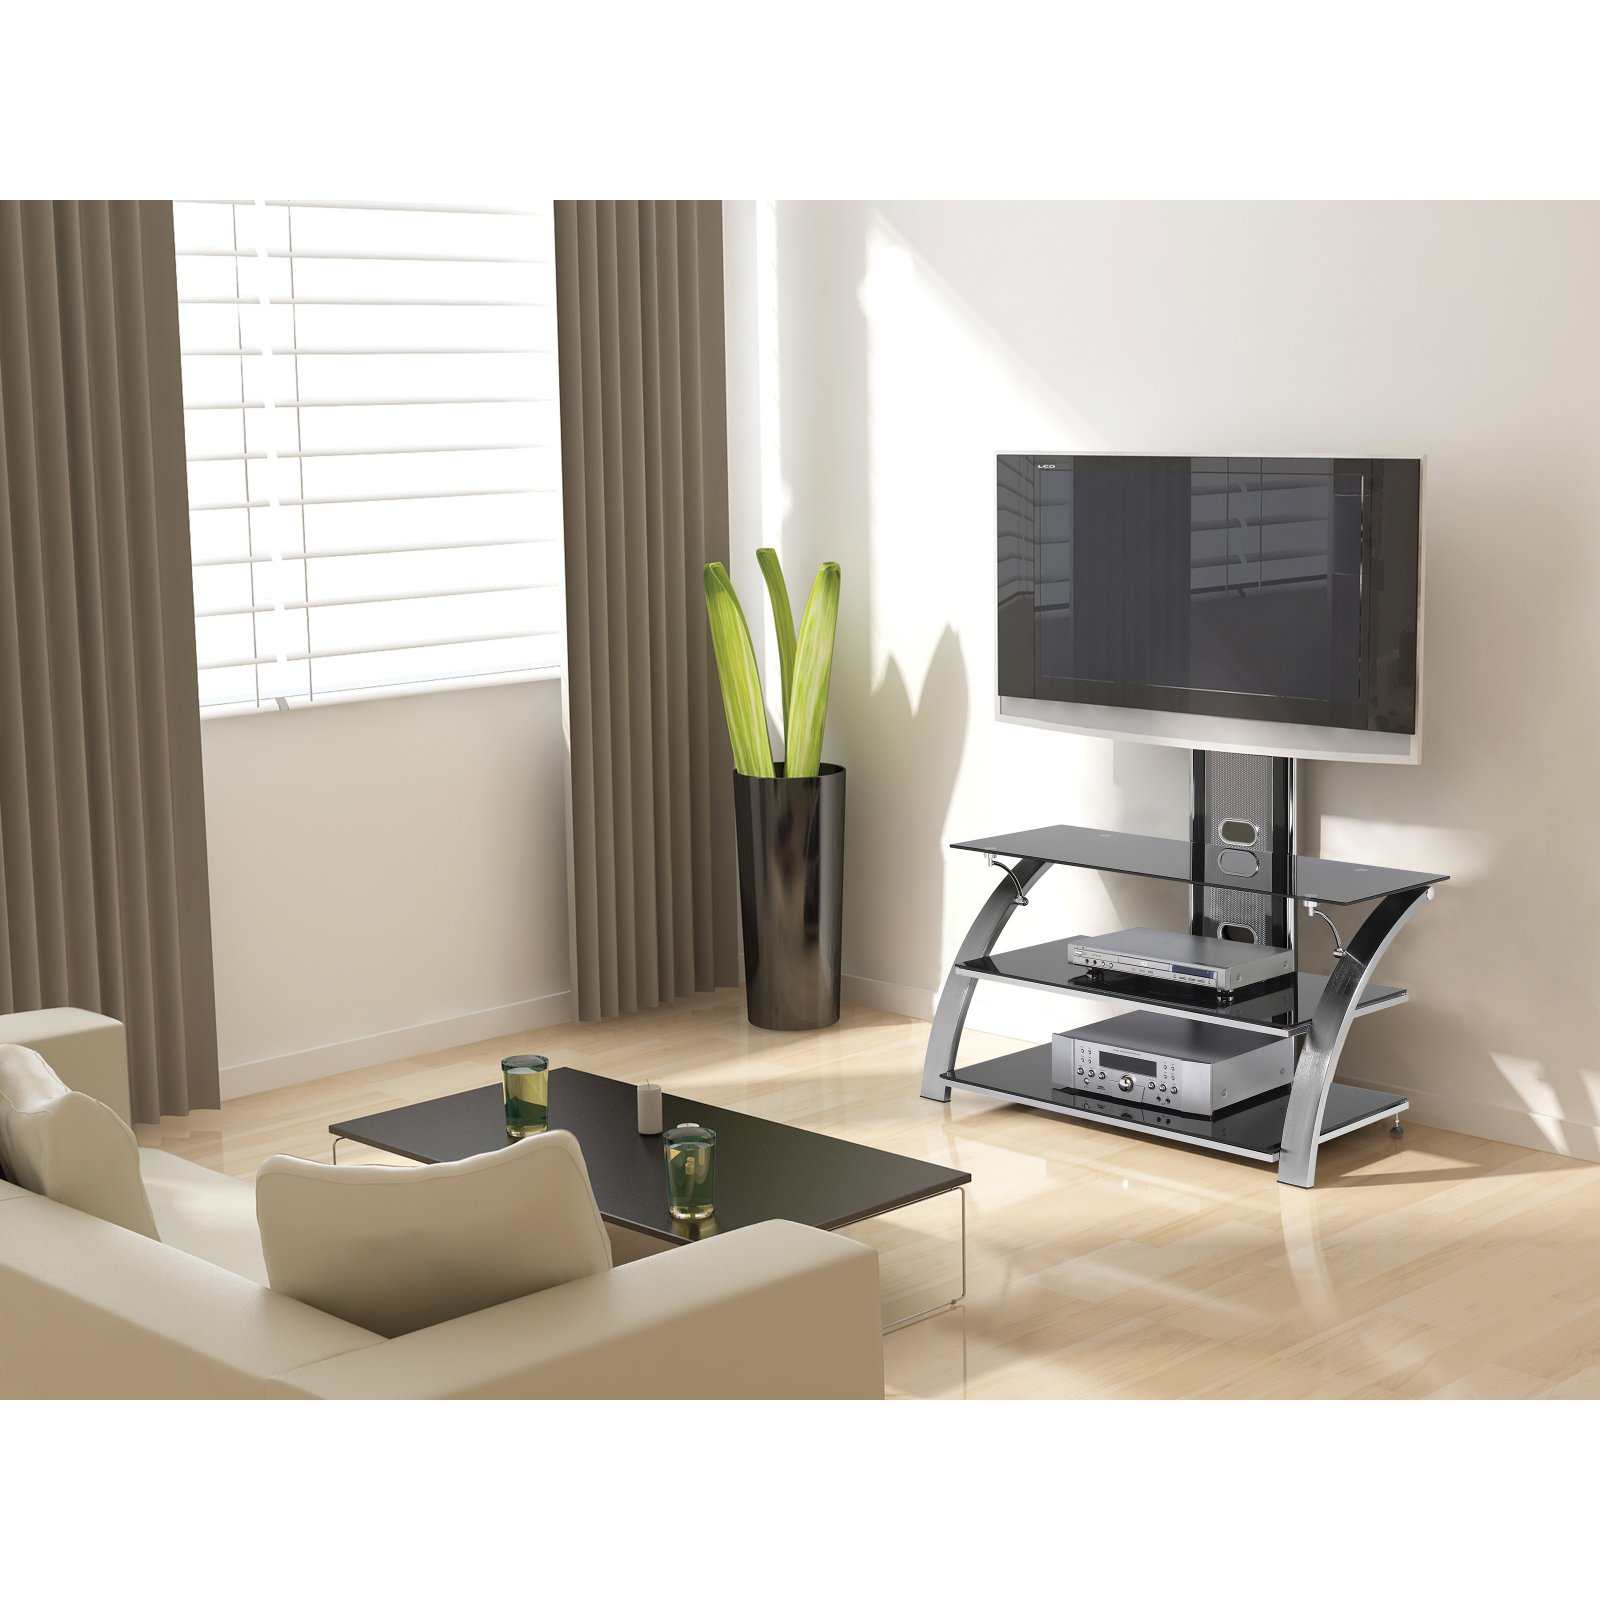 Designs Of Tv Stand : Tv stand designs for small living room stand design for